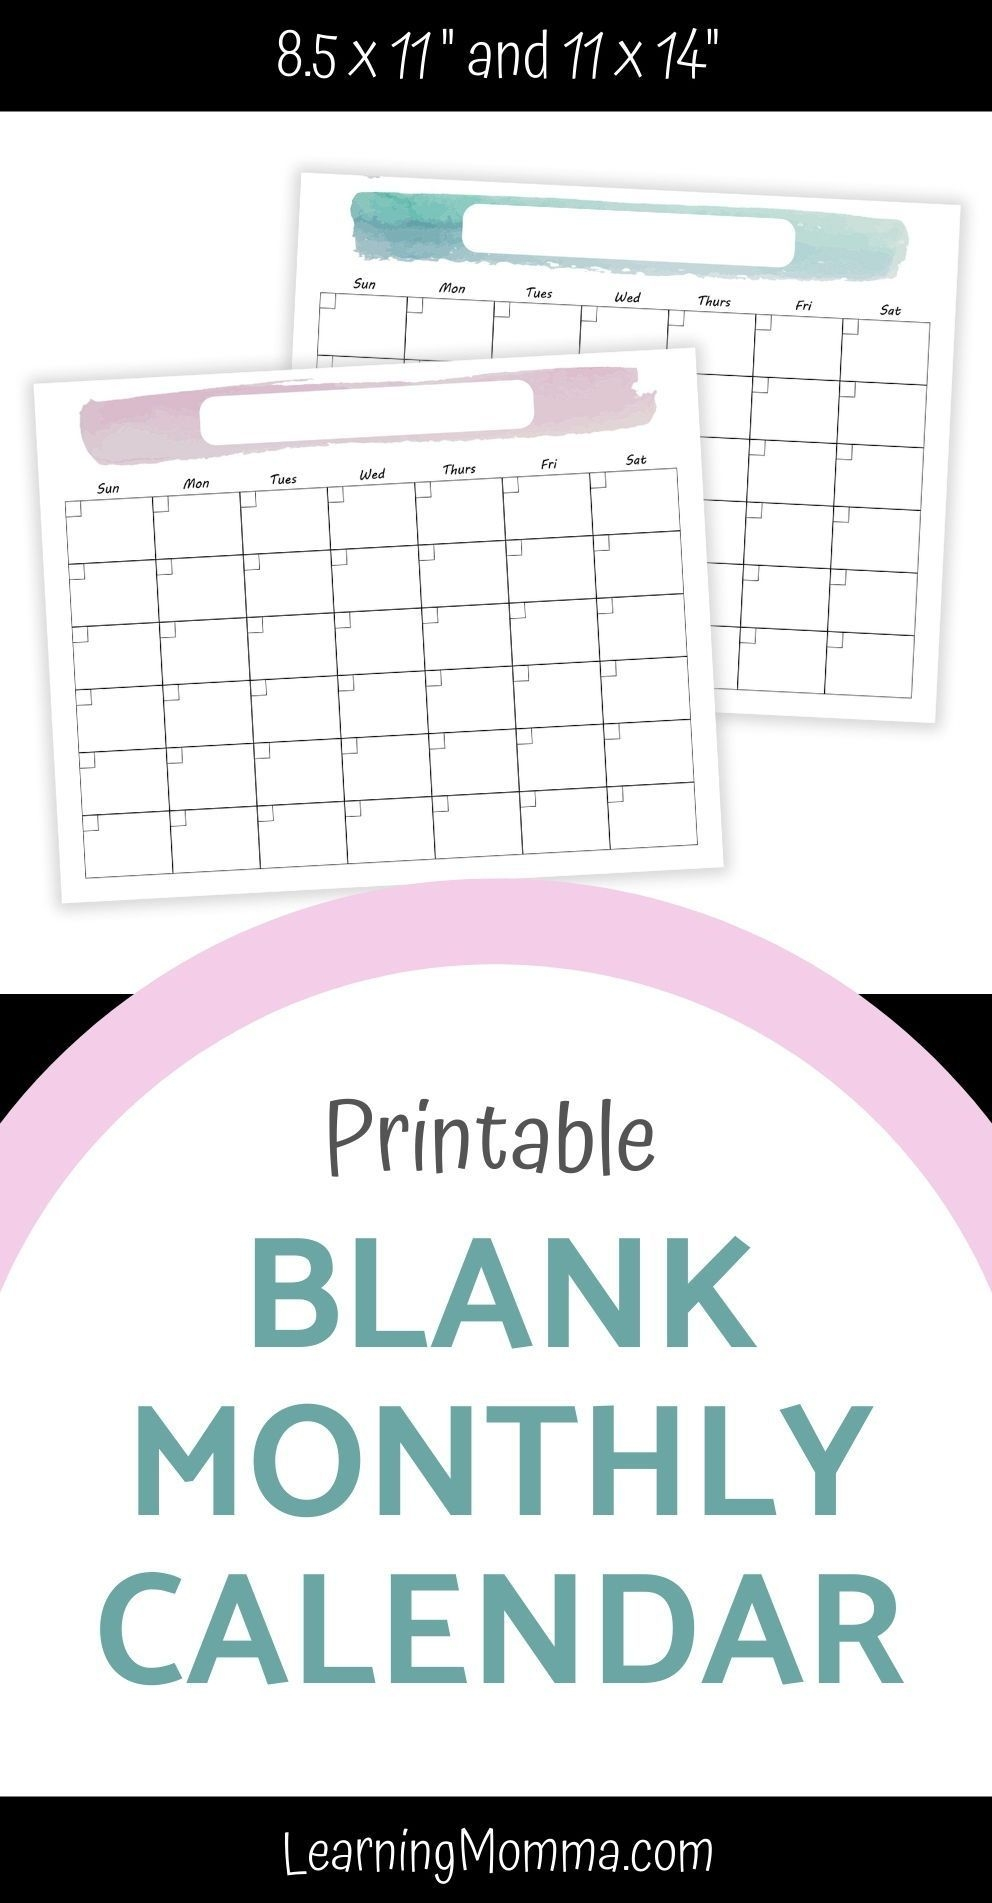 "printable monthly calendar 8 5x11"" or 11x14"" with"